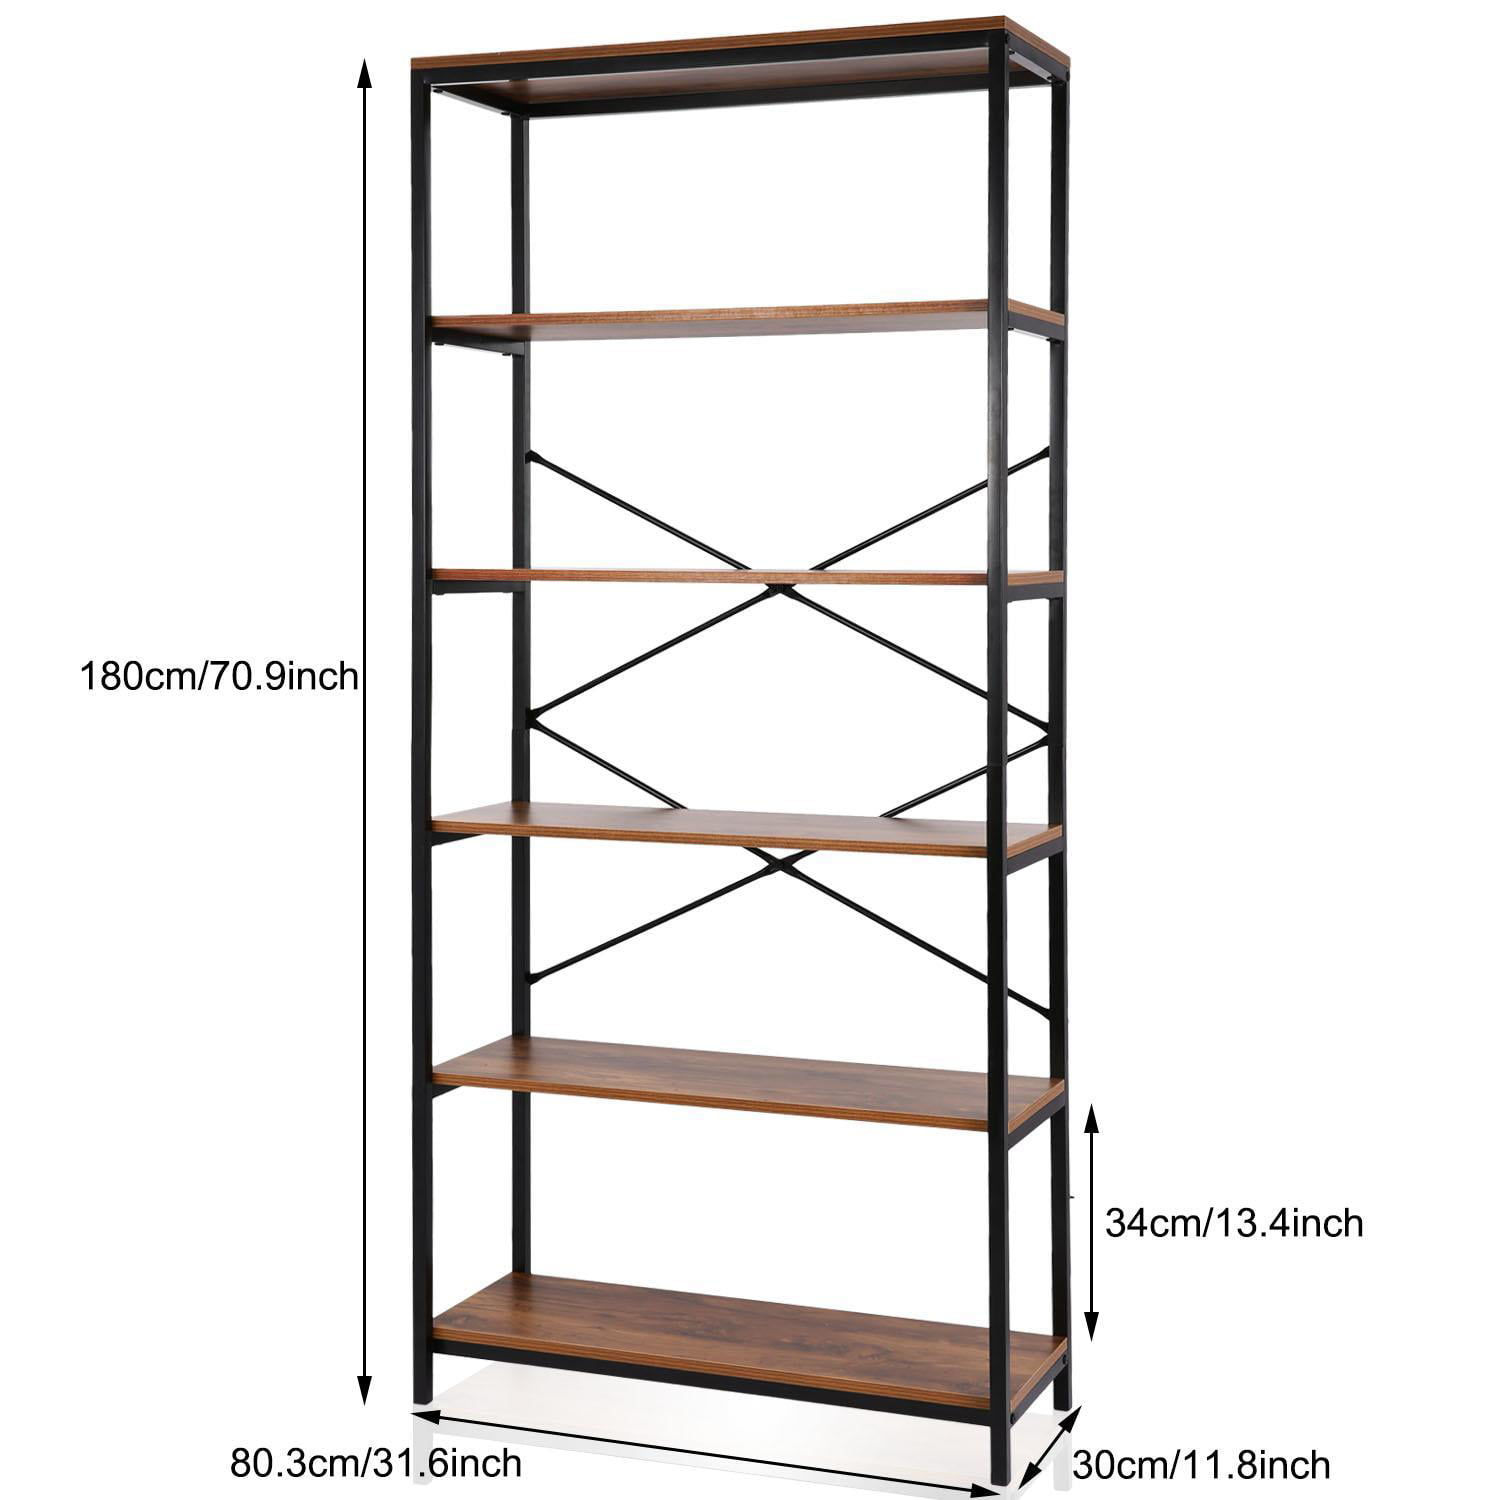 5-tier Wooden Bookcase Storage Shelves Organizer, Retro Bookshelf Plant  Display Shelf, Wood And Steel Frame Open Wide For Balcony/study Room/living